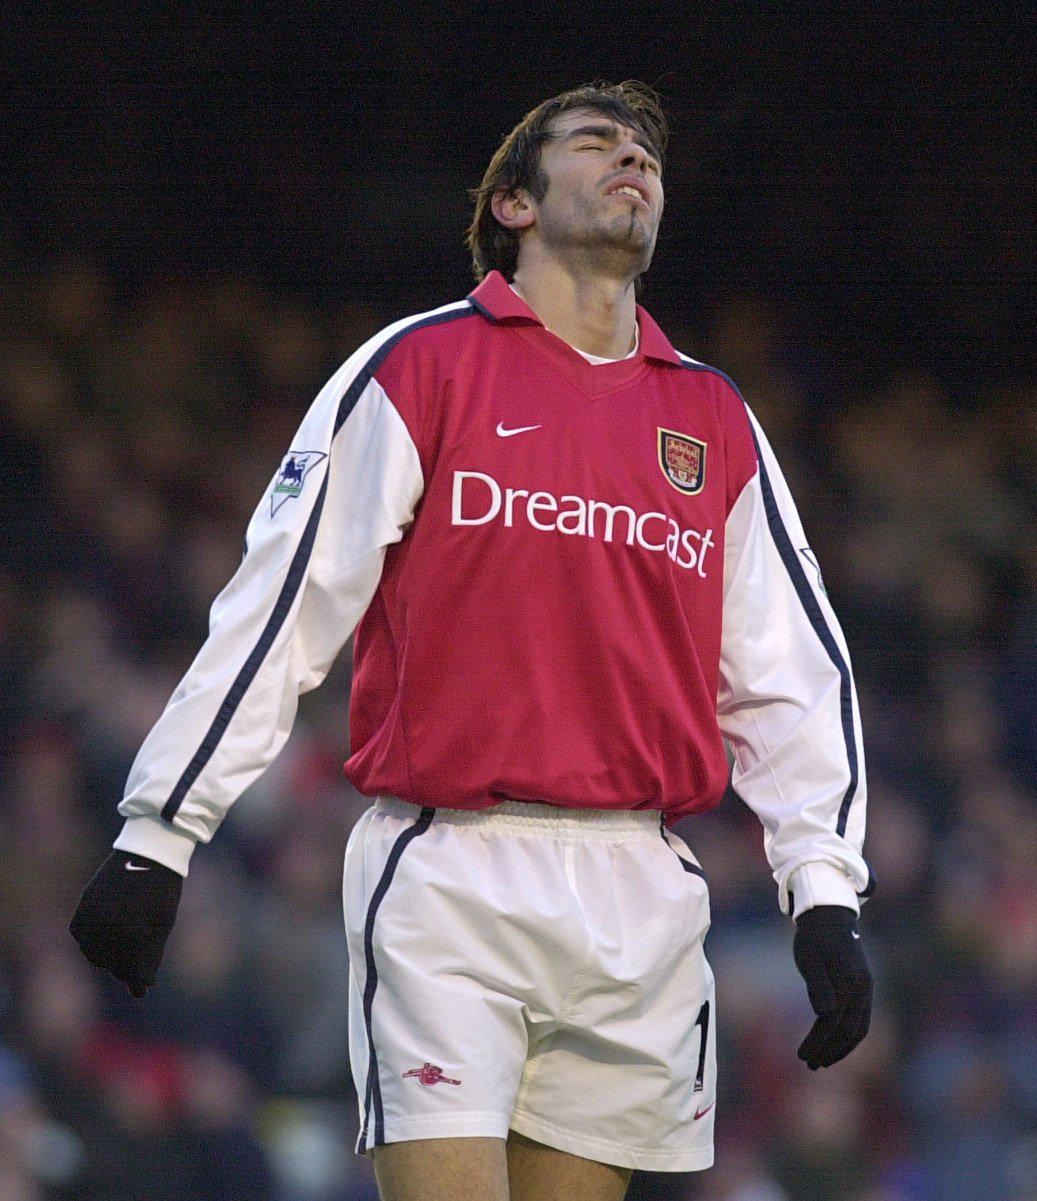 These days, we only remember the best of Pires